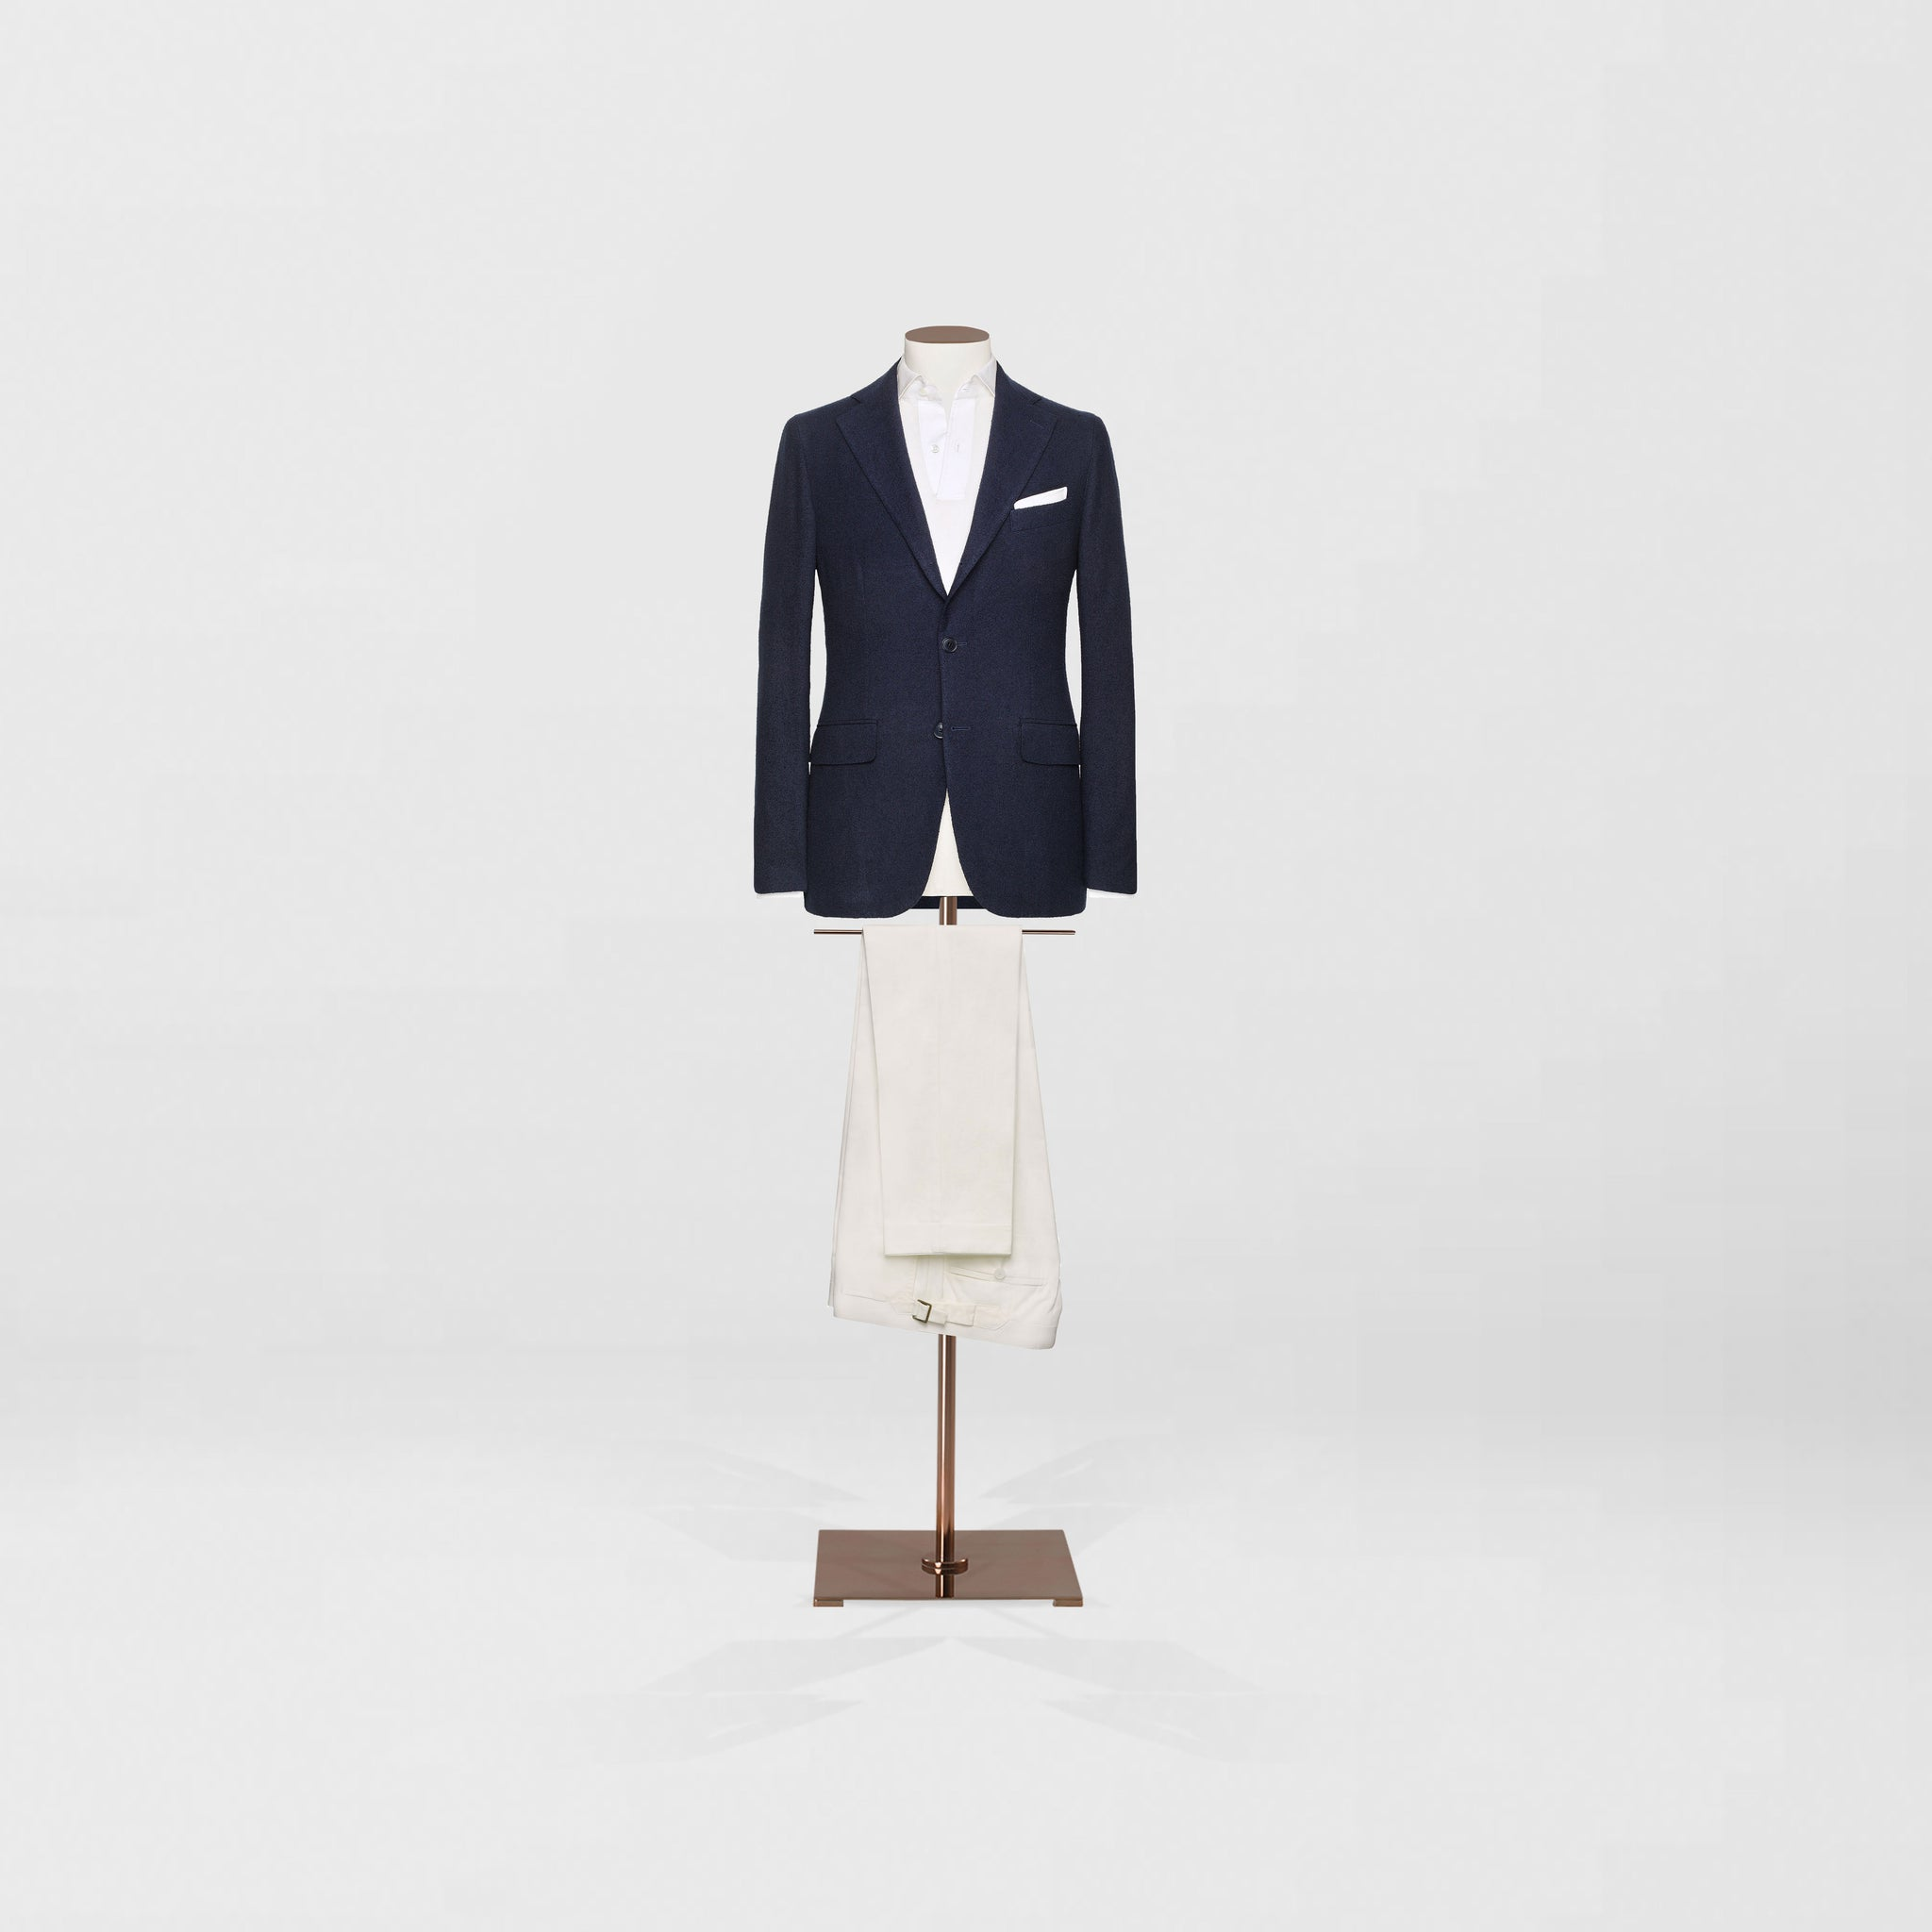 Deconstructed sports jacket & cotton chino trouser - Tailor & Co Sydney.